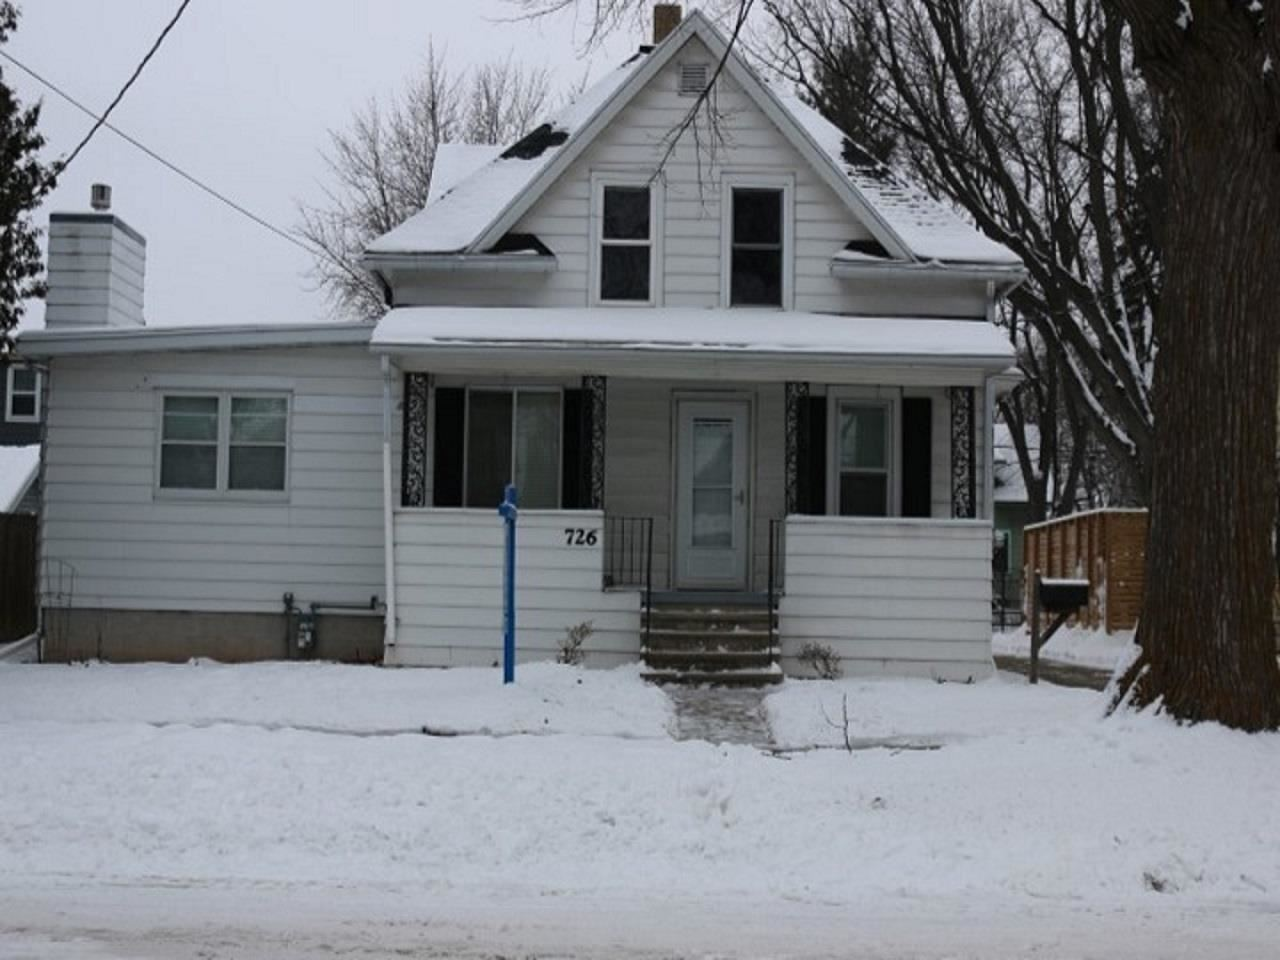 726 W COMMERCIAL Street, Appleton, WI 54914 - MLS#: 50232409